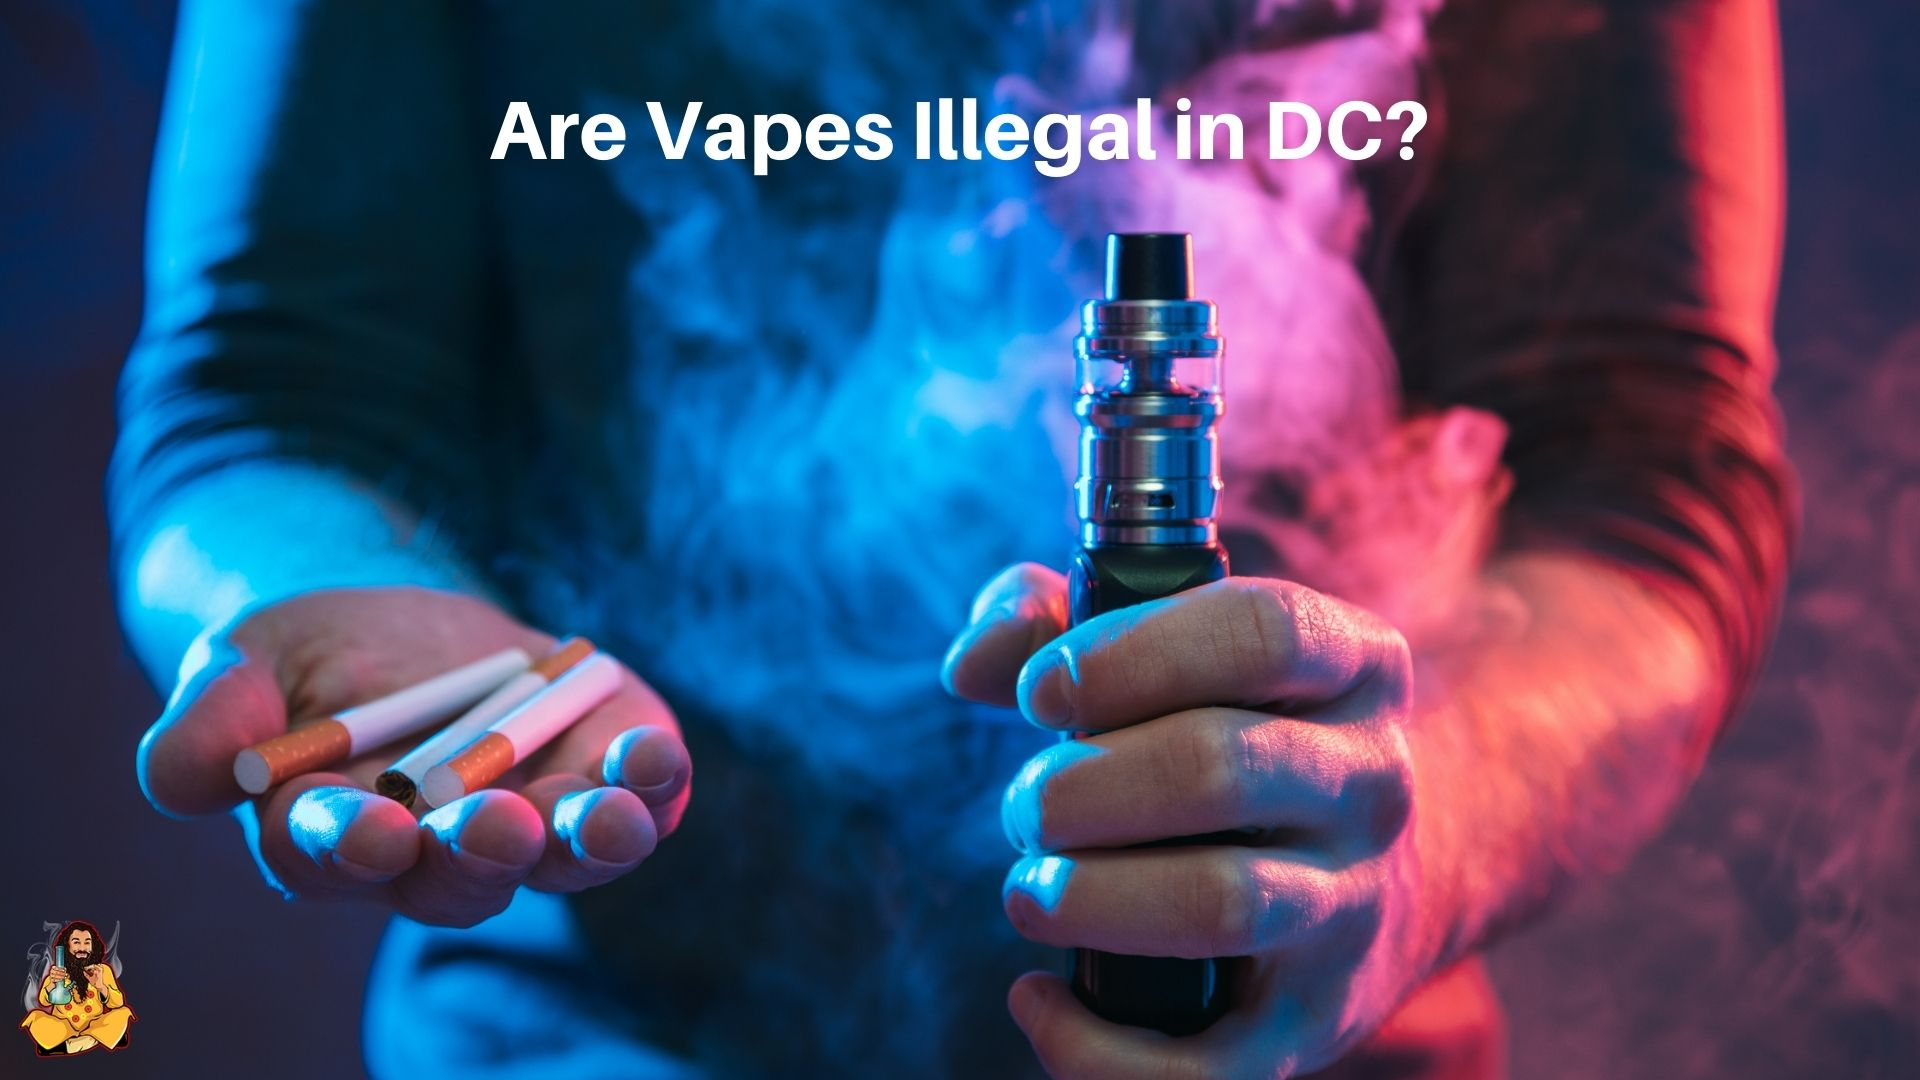 Are Vapes Illegal in DC?